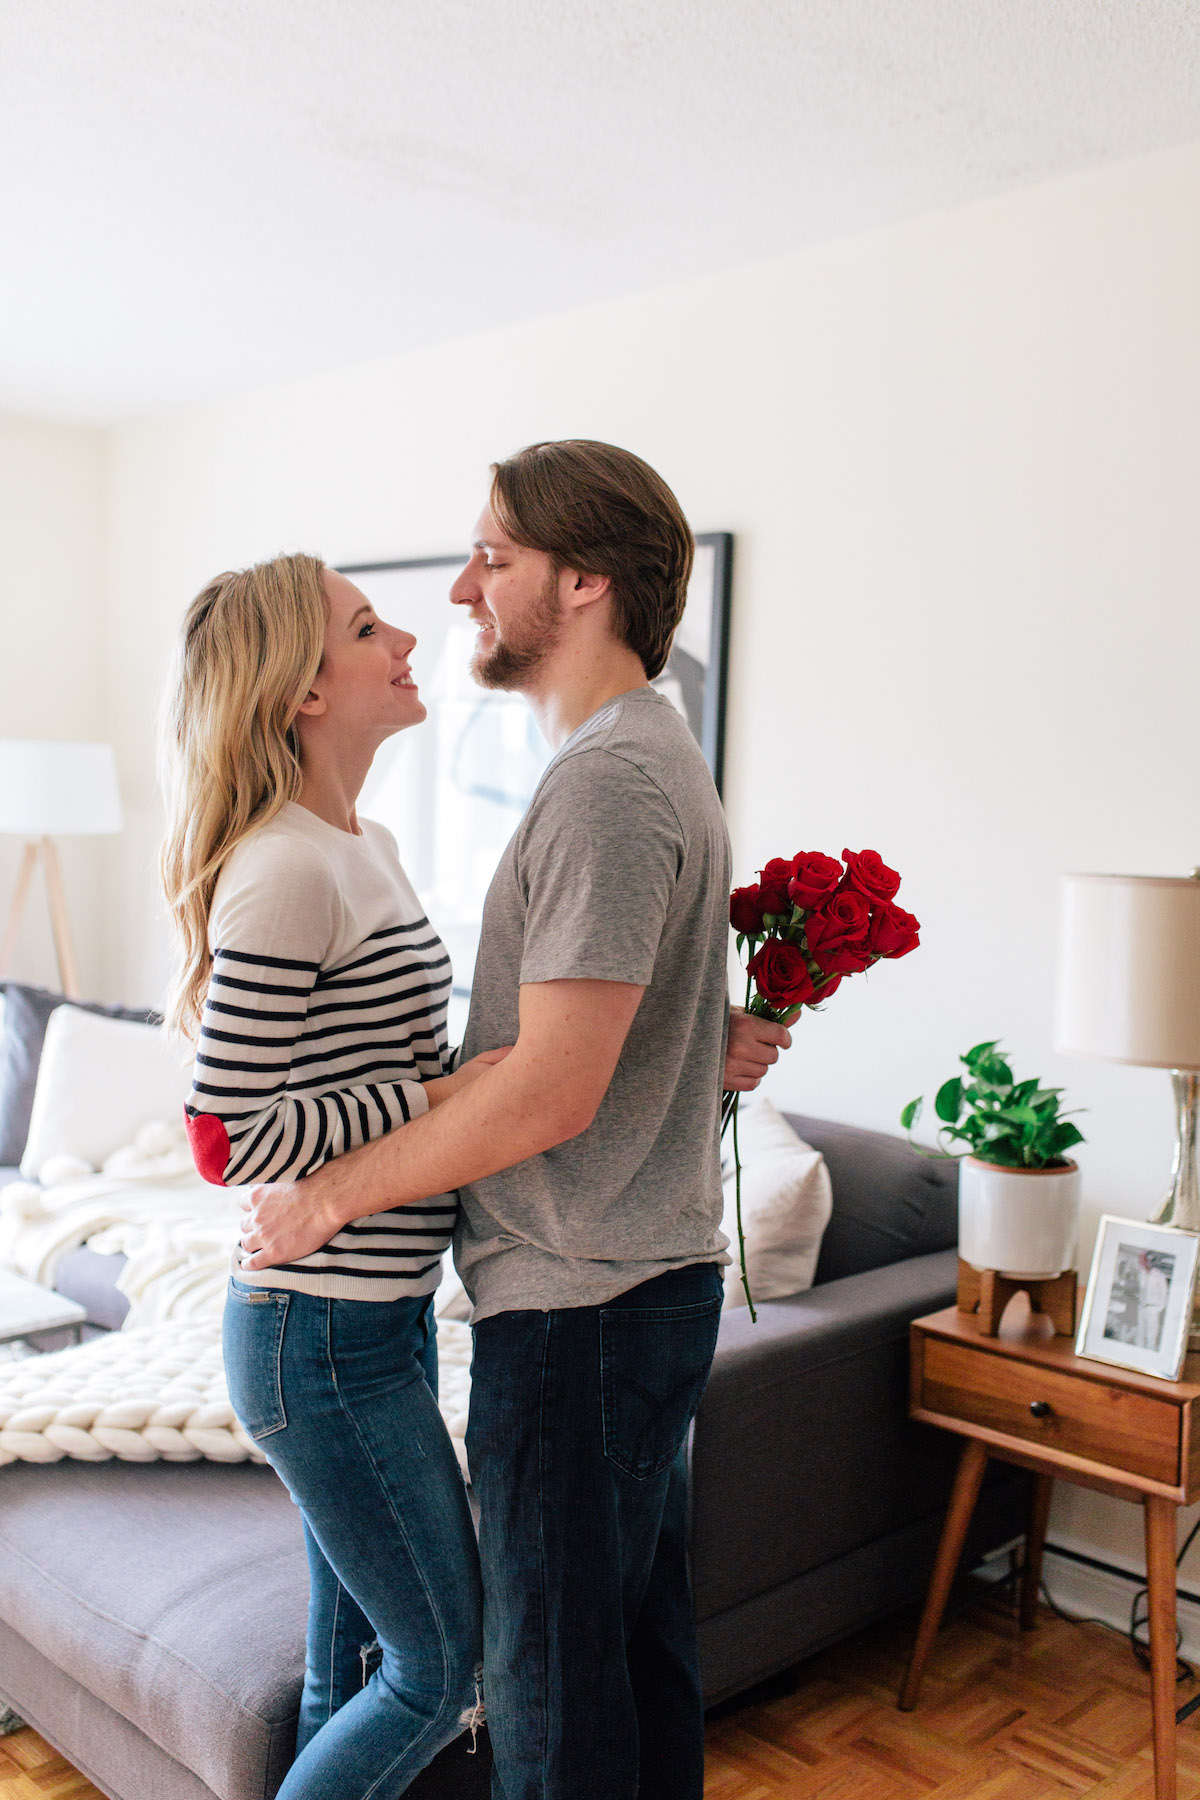 3 Important Lessons I've Learned That Have Given Me Confidence In My Relationship